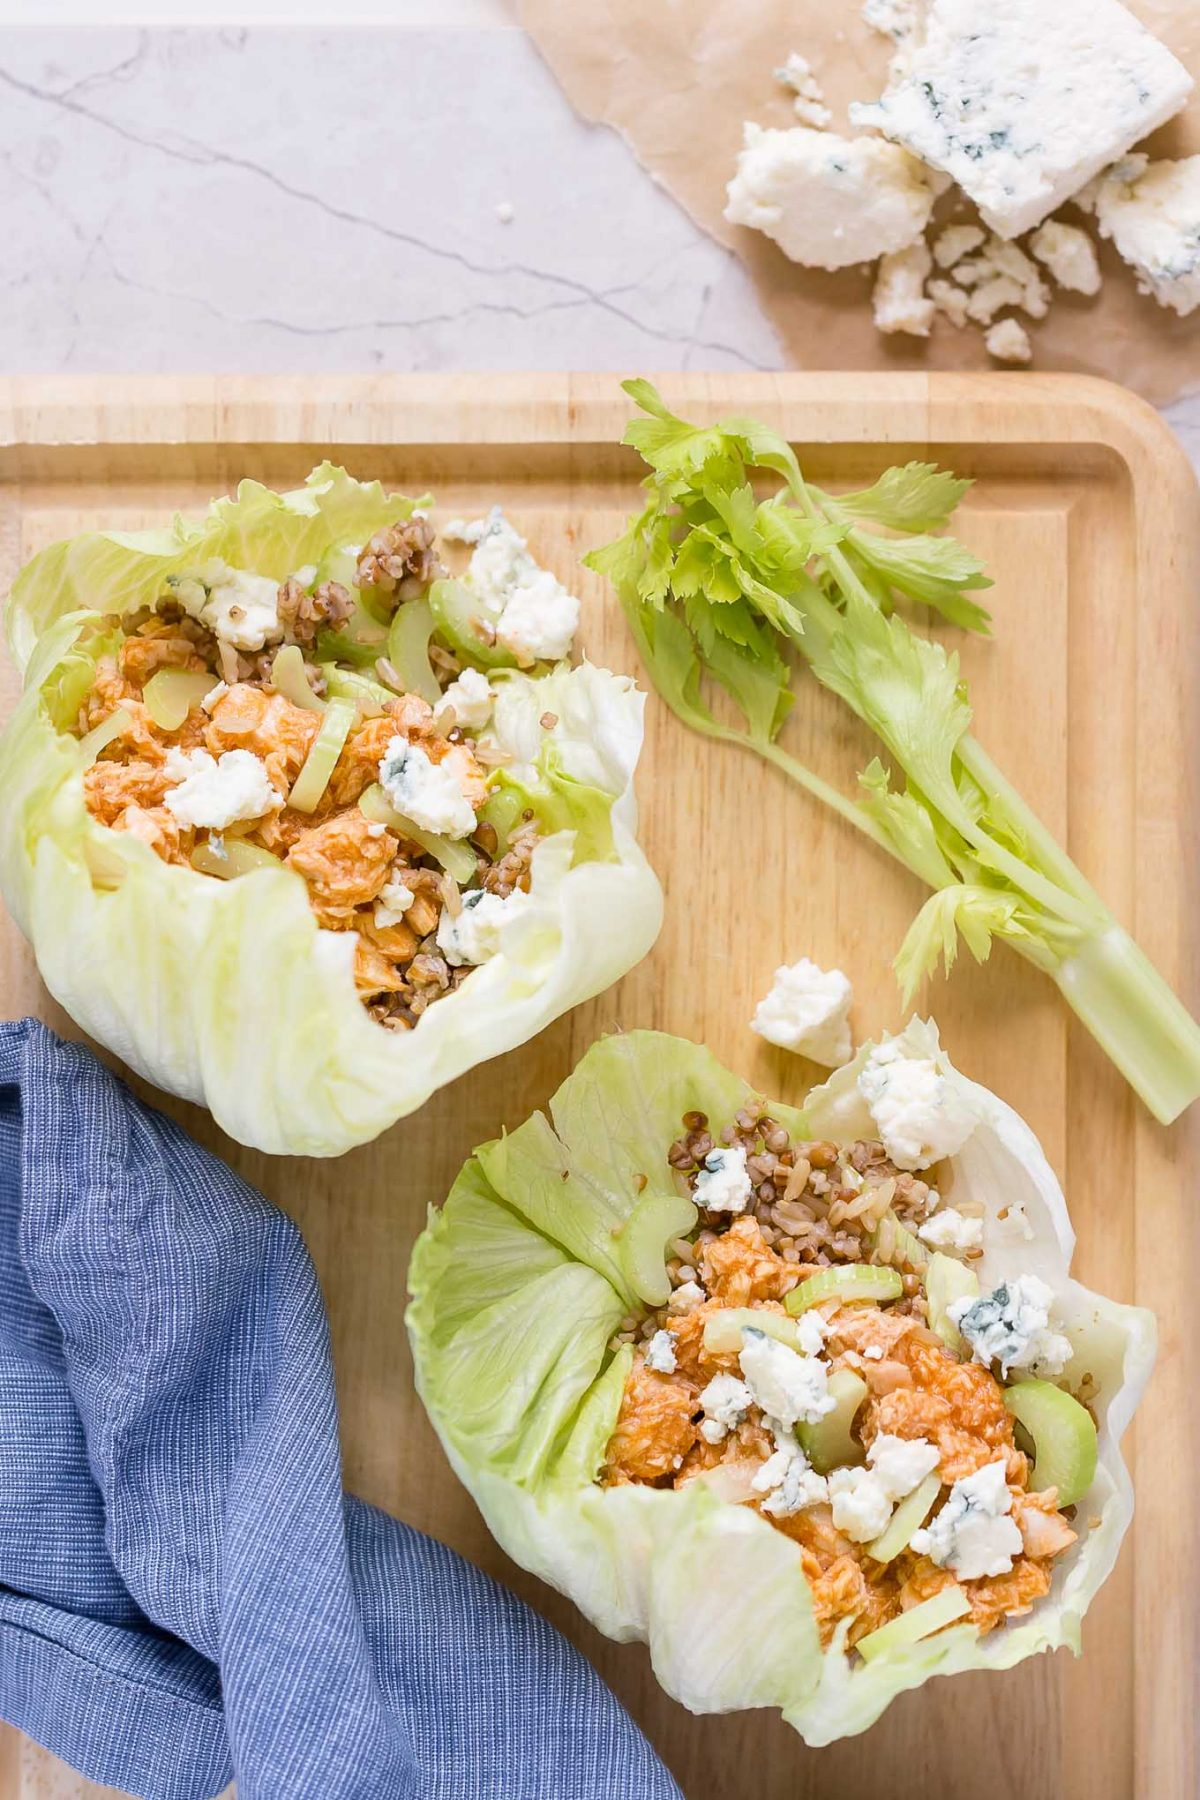 Buffalo Salmon Lettuce Wraps Recipe-A delicious mix of buffalo salmon, crispy celery, multigrain rice, and cool blue cheese inside lettuce wraps! Protein- and fiber-packed, with only 237 cals!